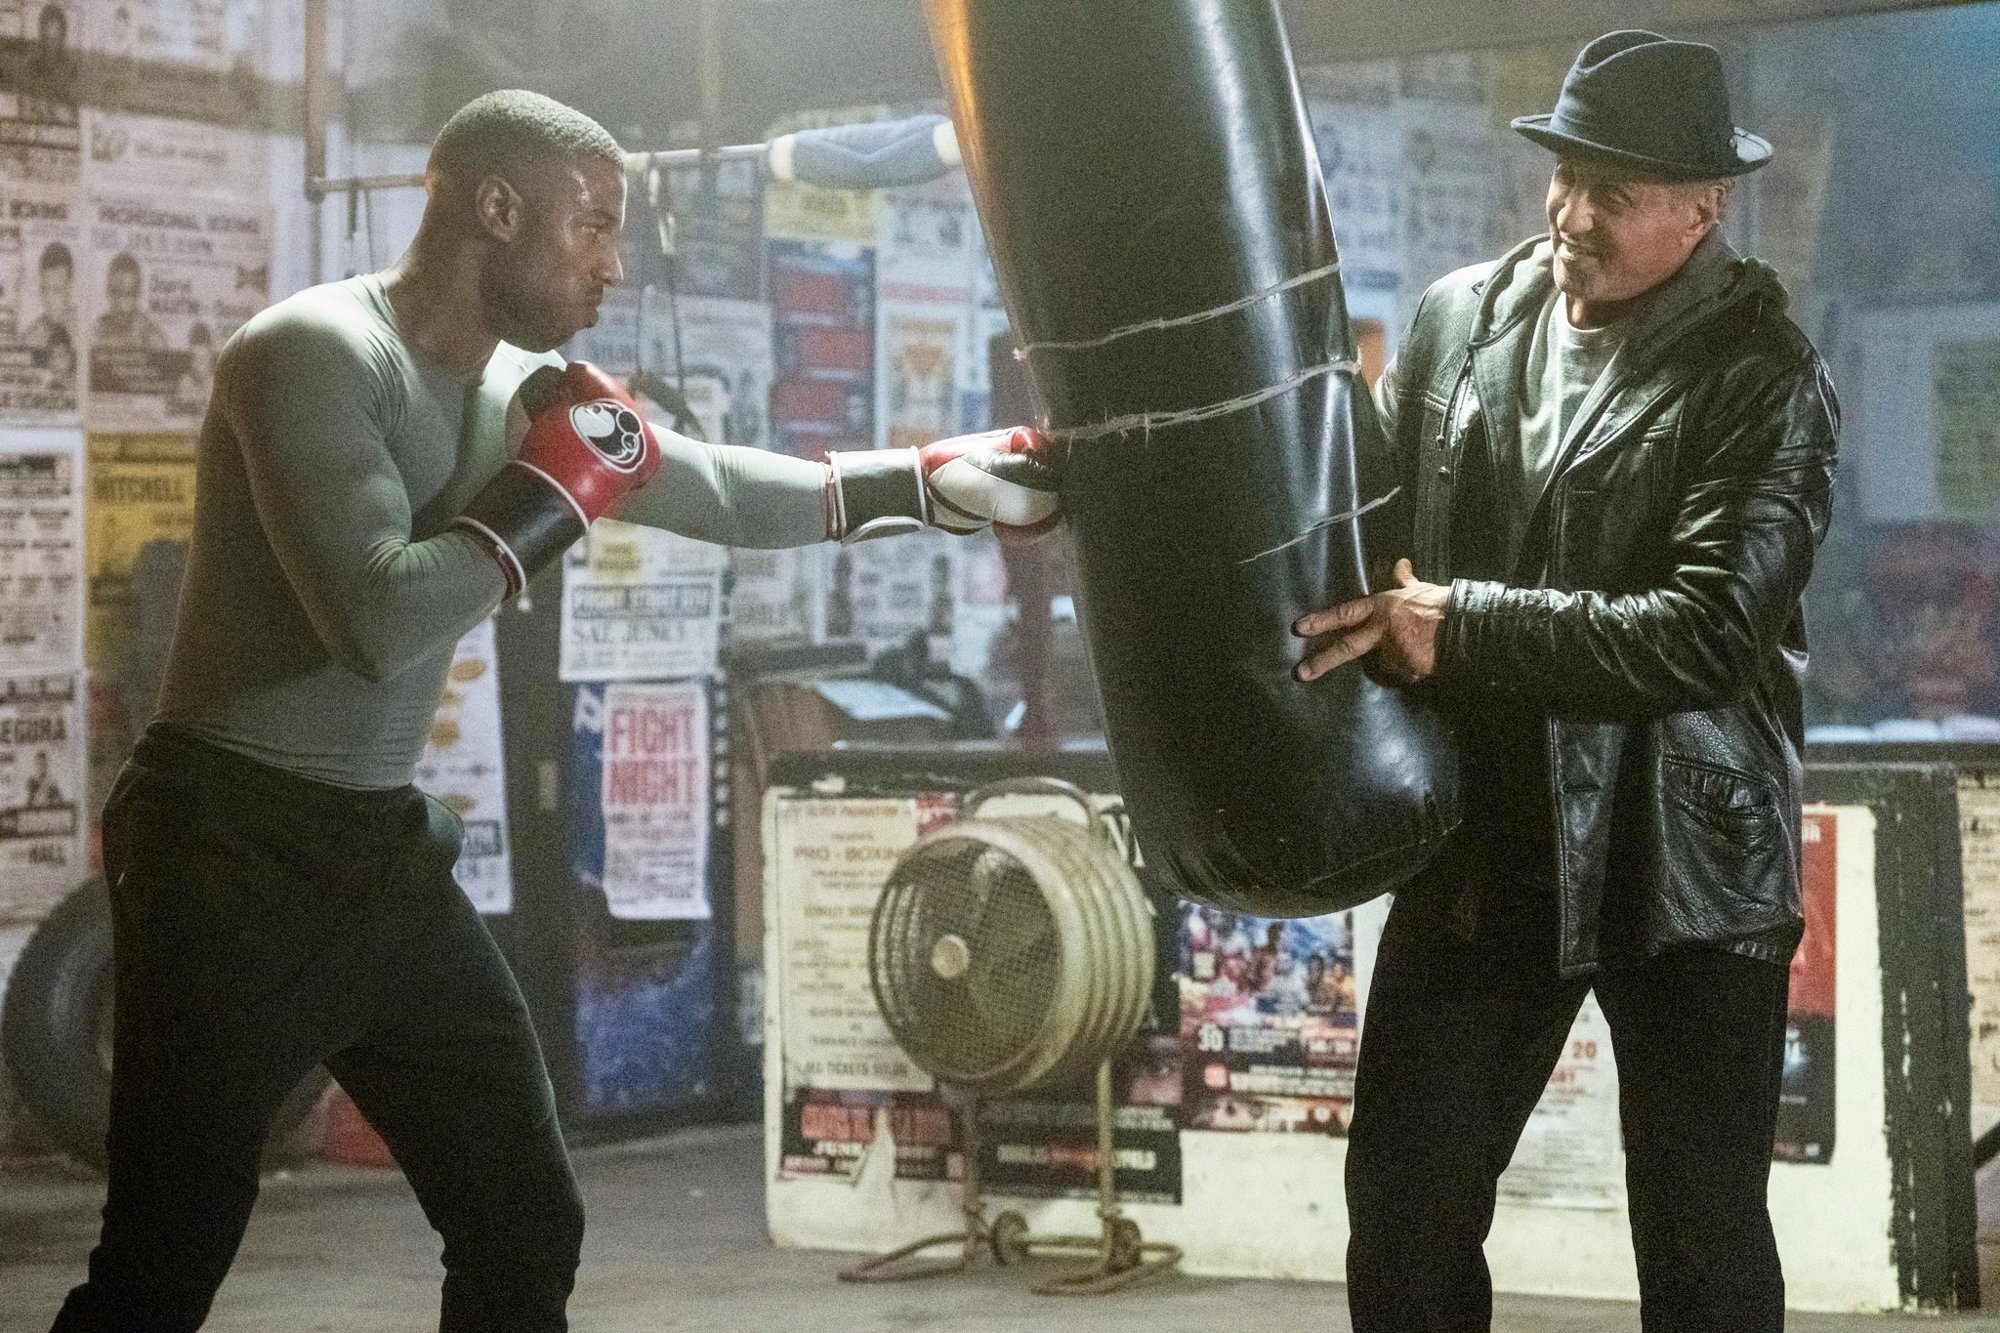 Michael B. Jordan stars as Adonis Johnson and Sylvester Stallone stars as Rocky Balboa in MGM's Creed II (2018)